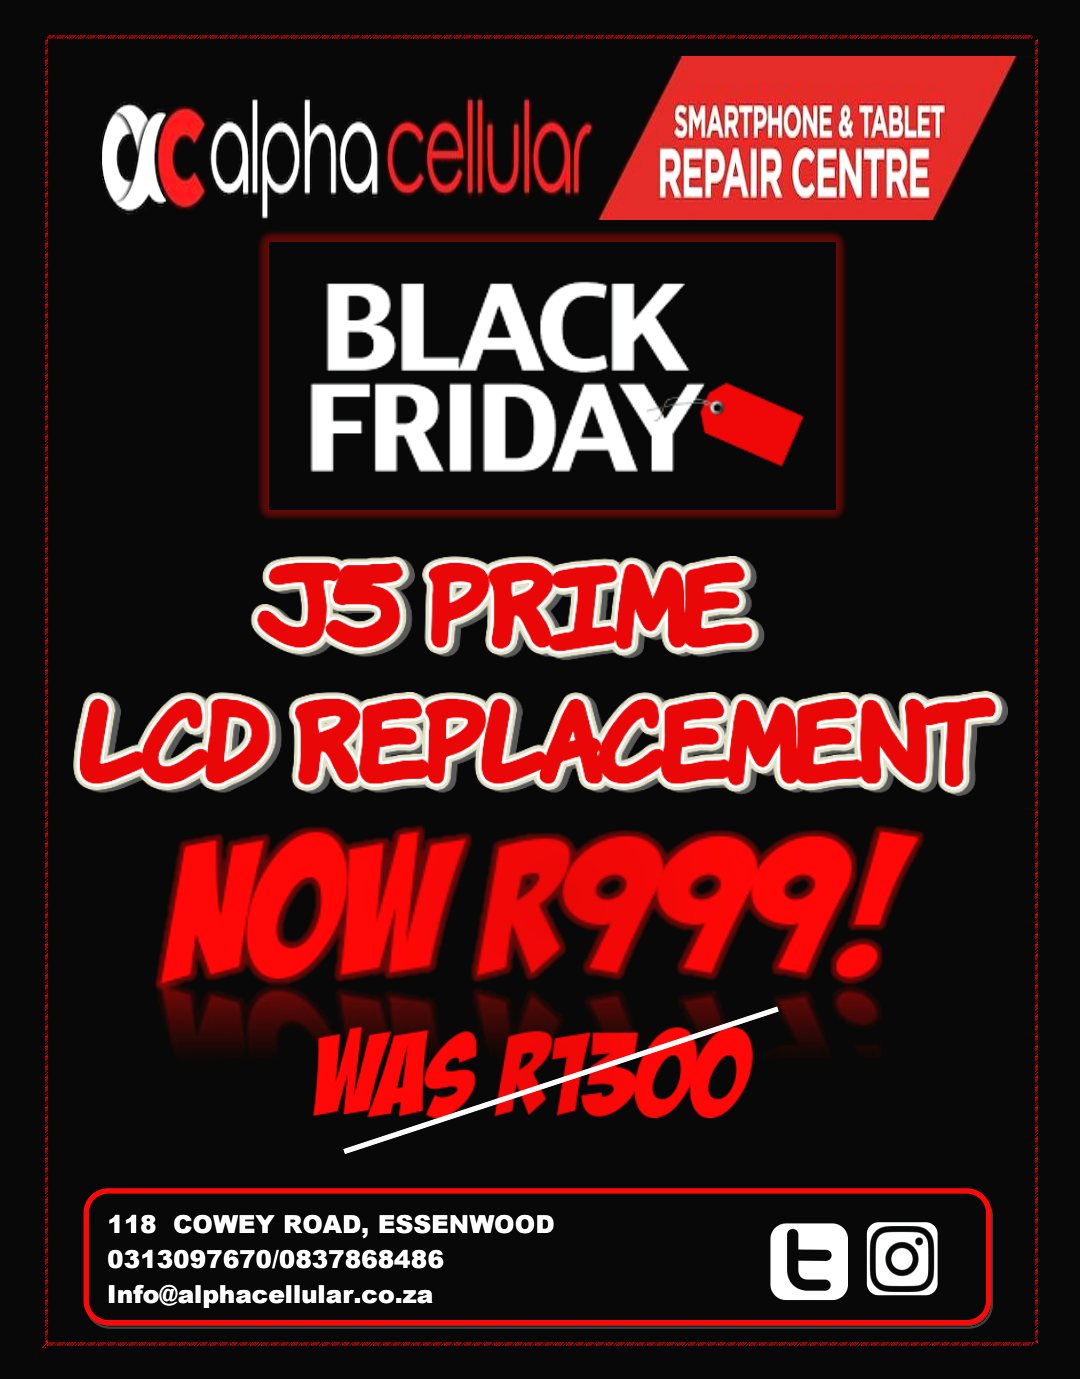 *BLACK FRIDAY SPECIAL* J5 PRIME SCREEN REPLACEMENTS